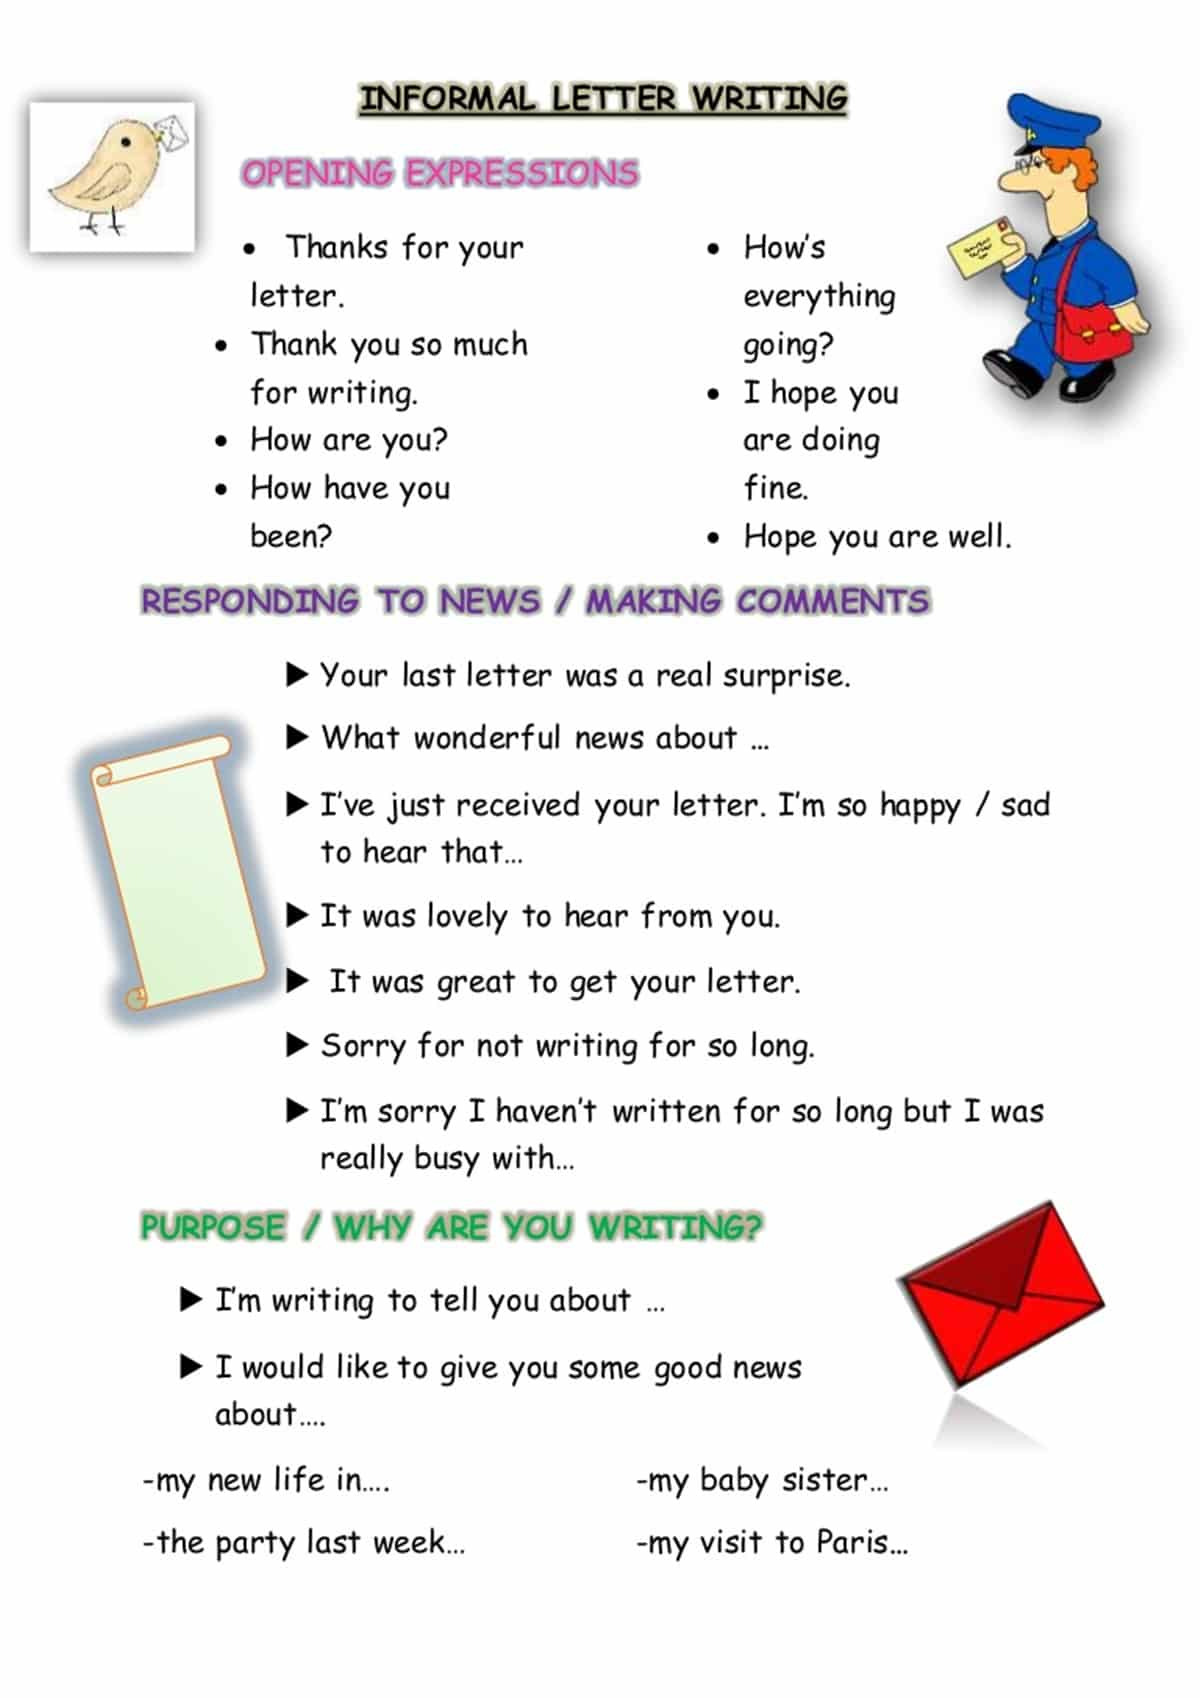 How To Begin An Informal Letter In French